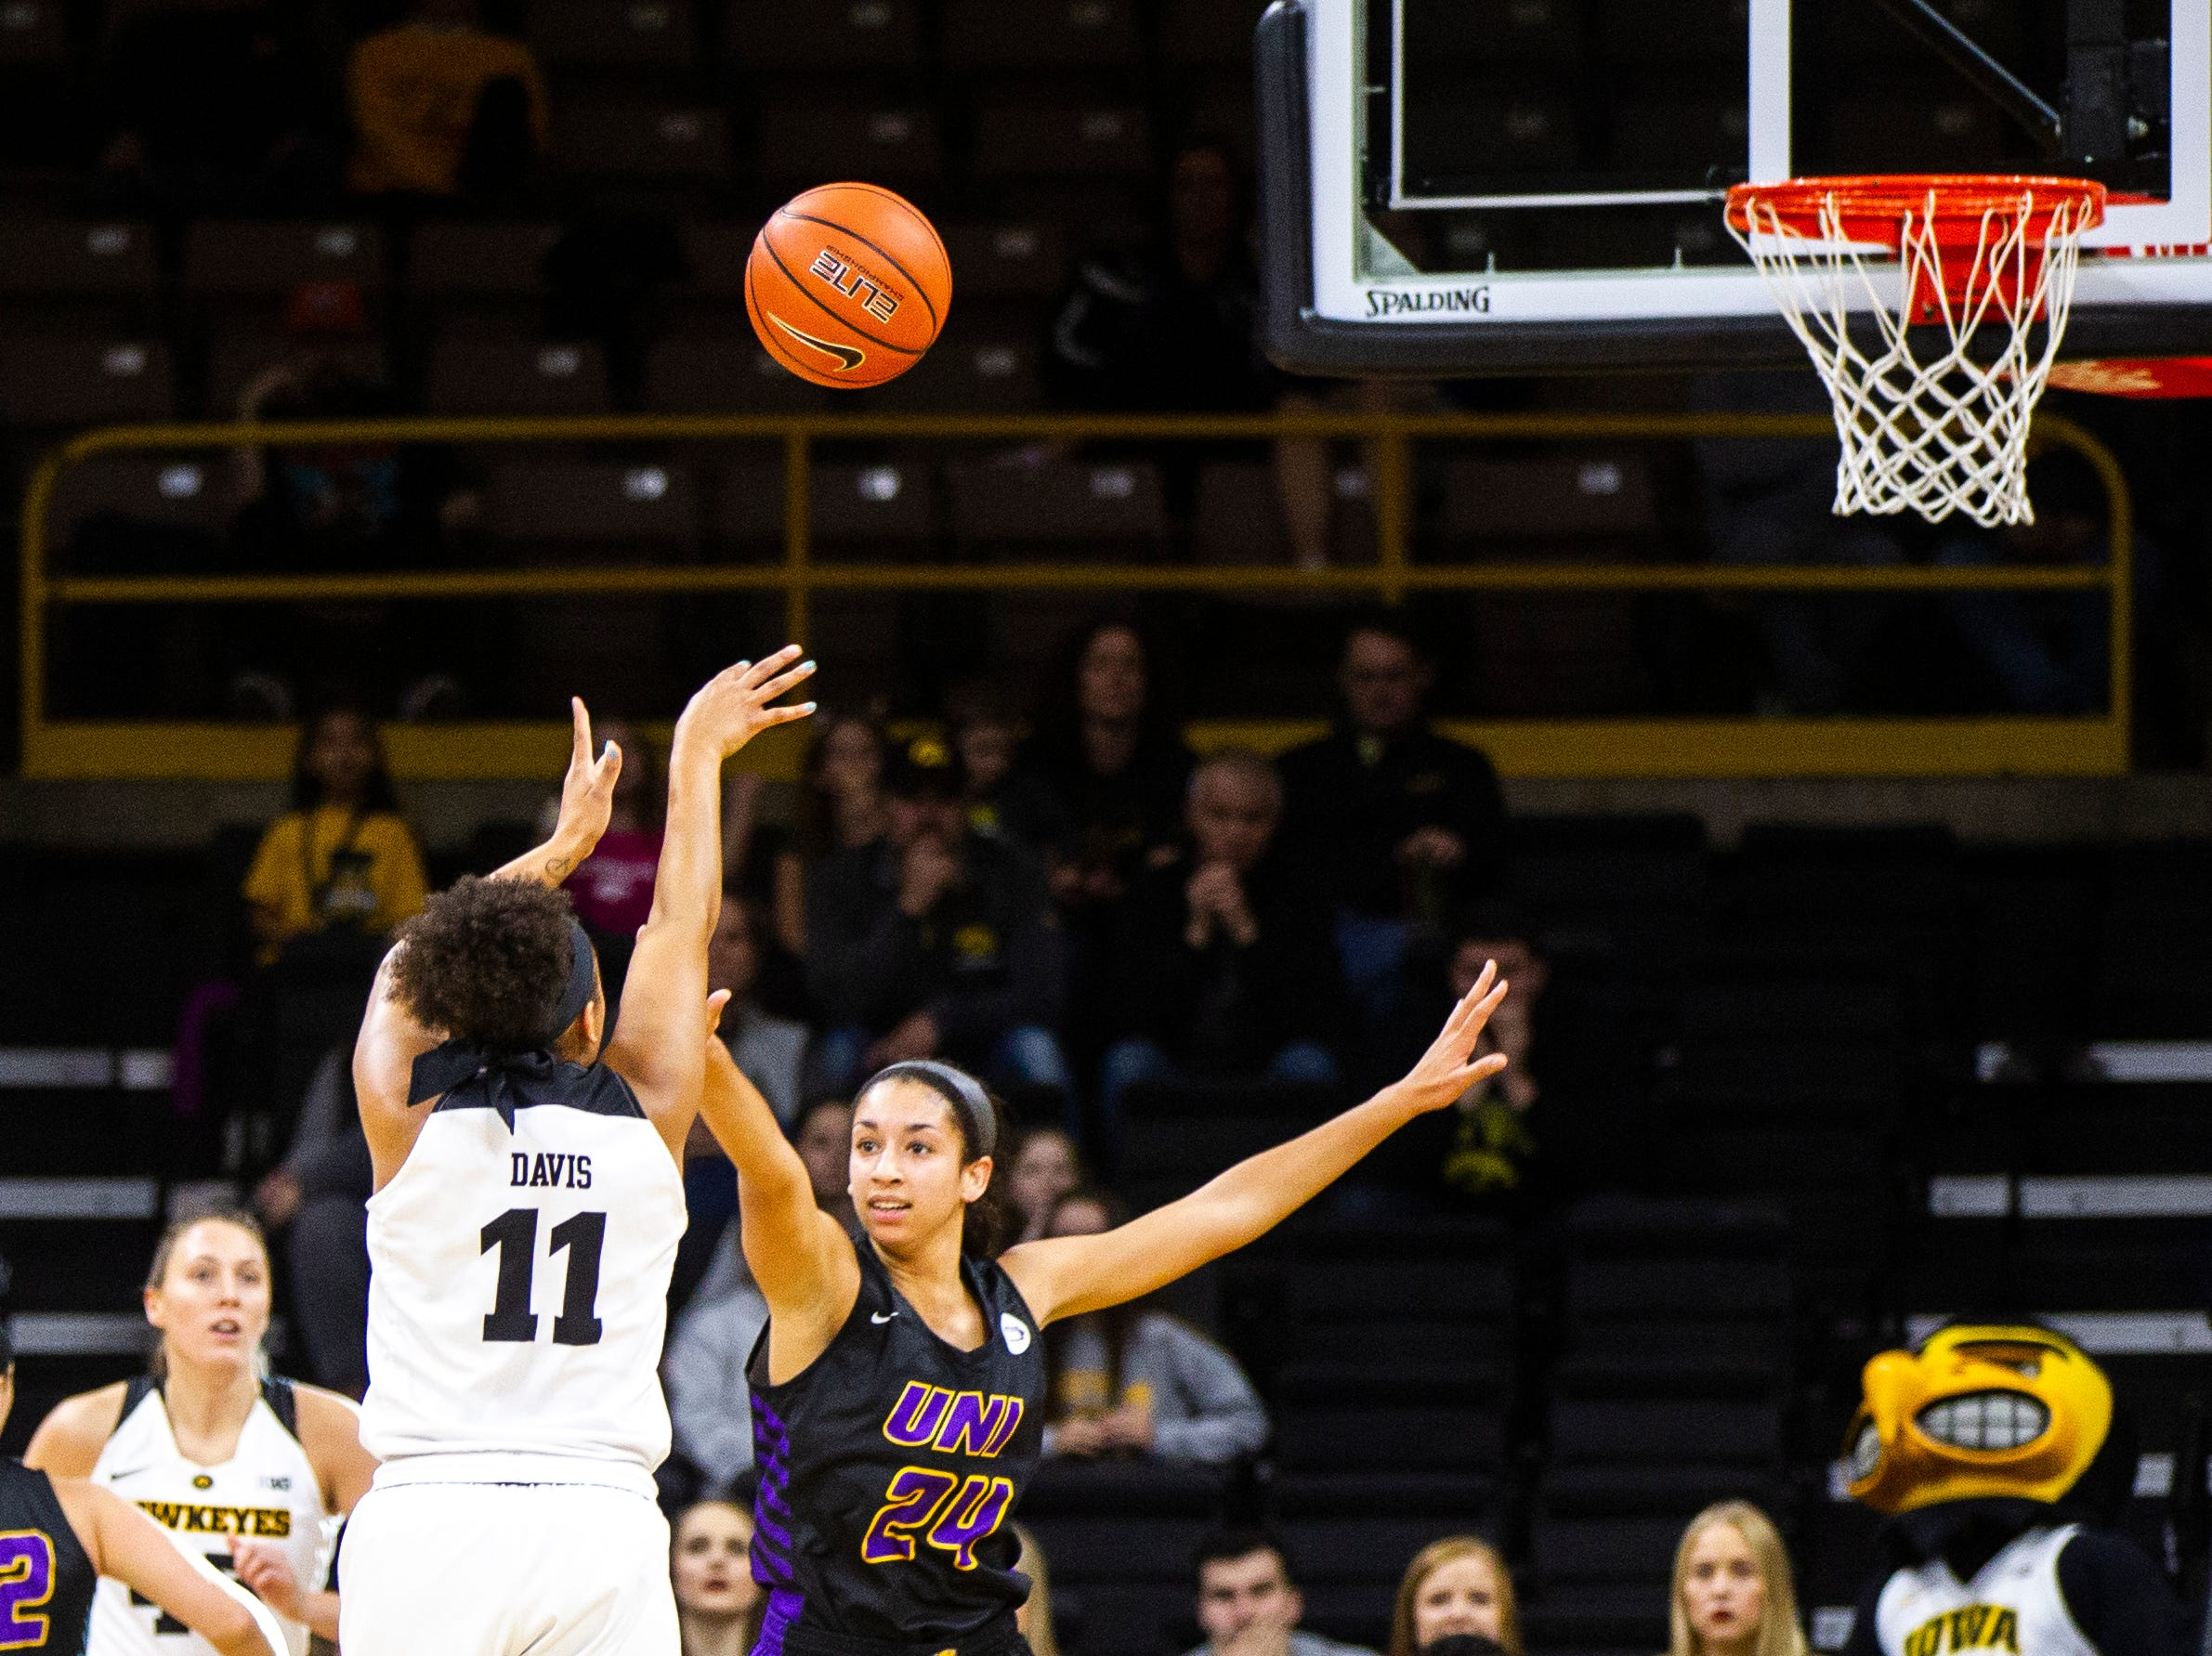 Iowa guard Tania Davis (11) shoots a 3-point basket while being defended by Northern Iowa guard Mikaela Morgan (24) during a NCAA women's basketball game on Sunday, Dec. 16, 2018, at Carver-Hawkeye Arena in Iowa City.